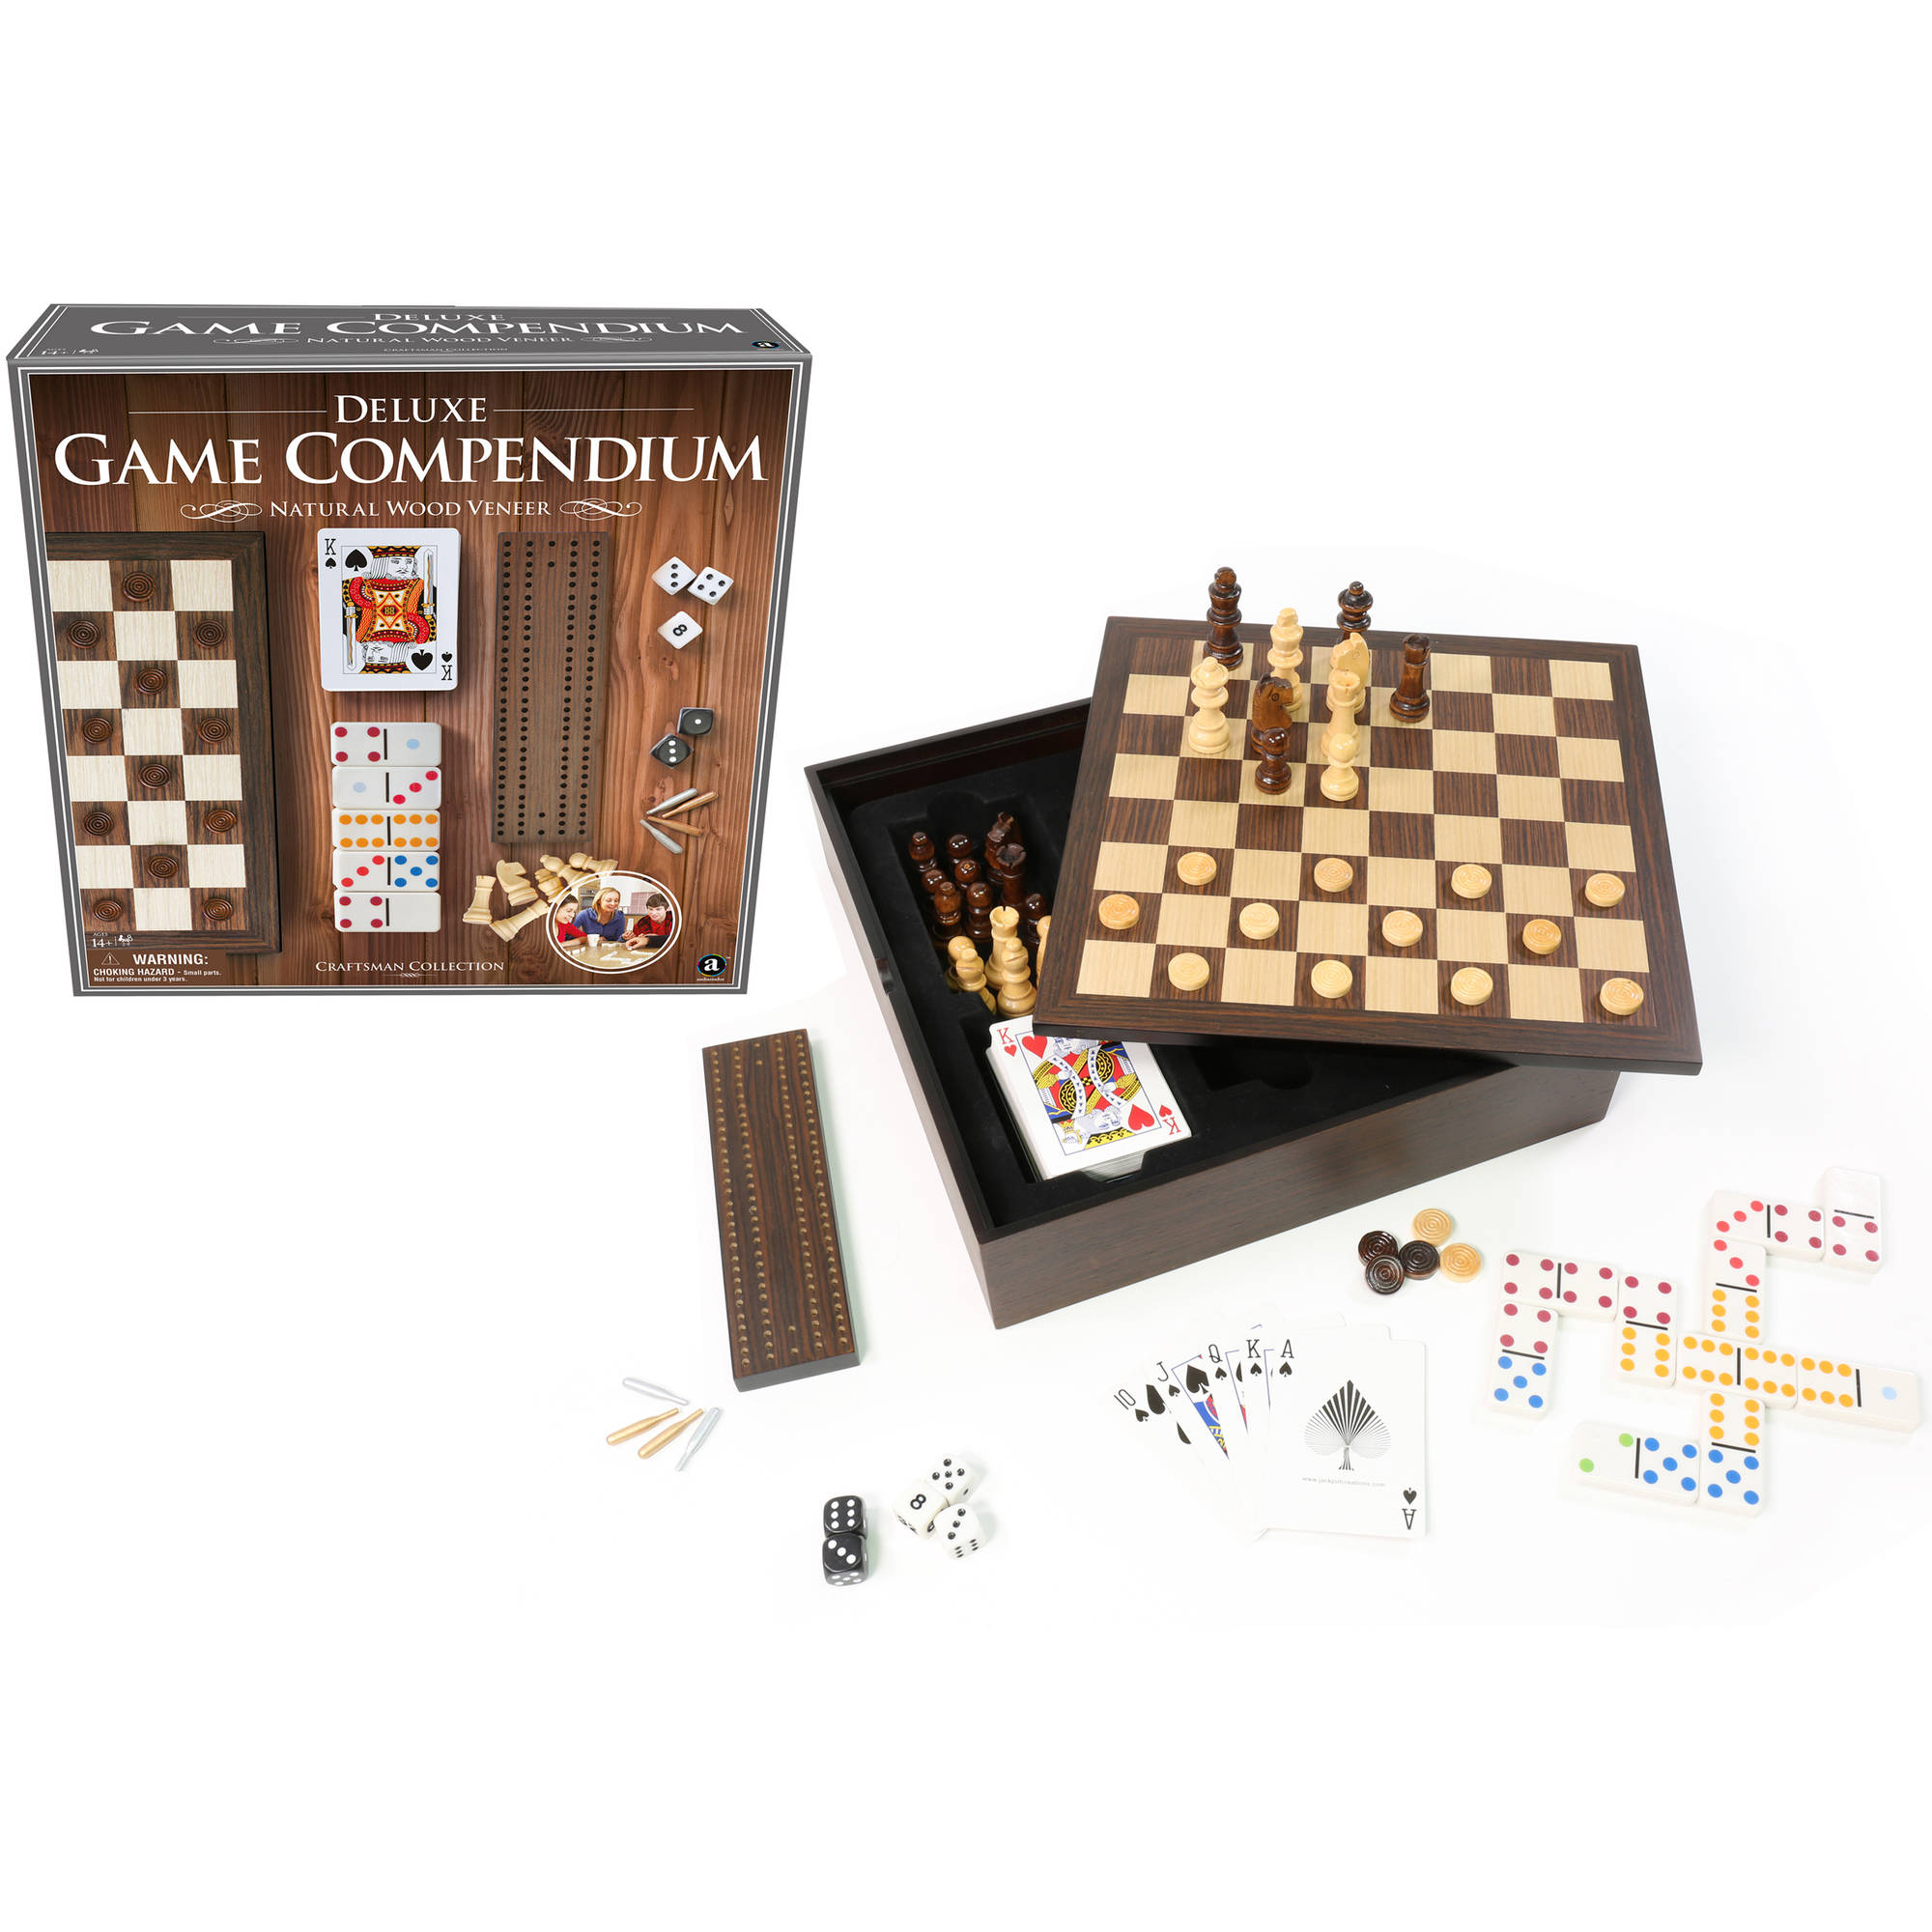 Craftsman Natural Wood Veneer Deluxe Games Compendium